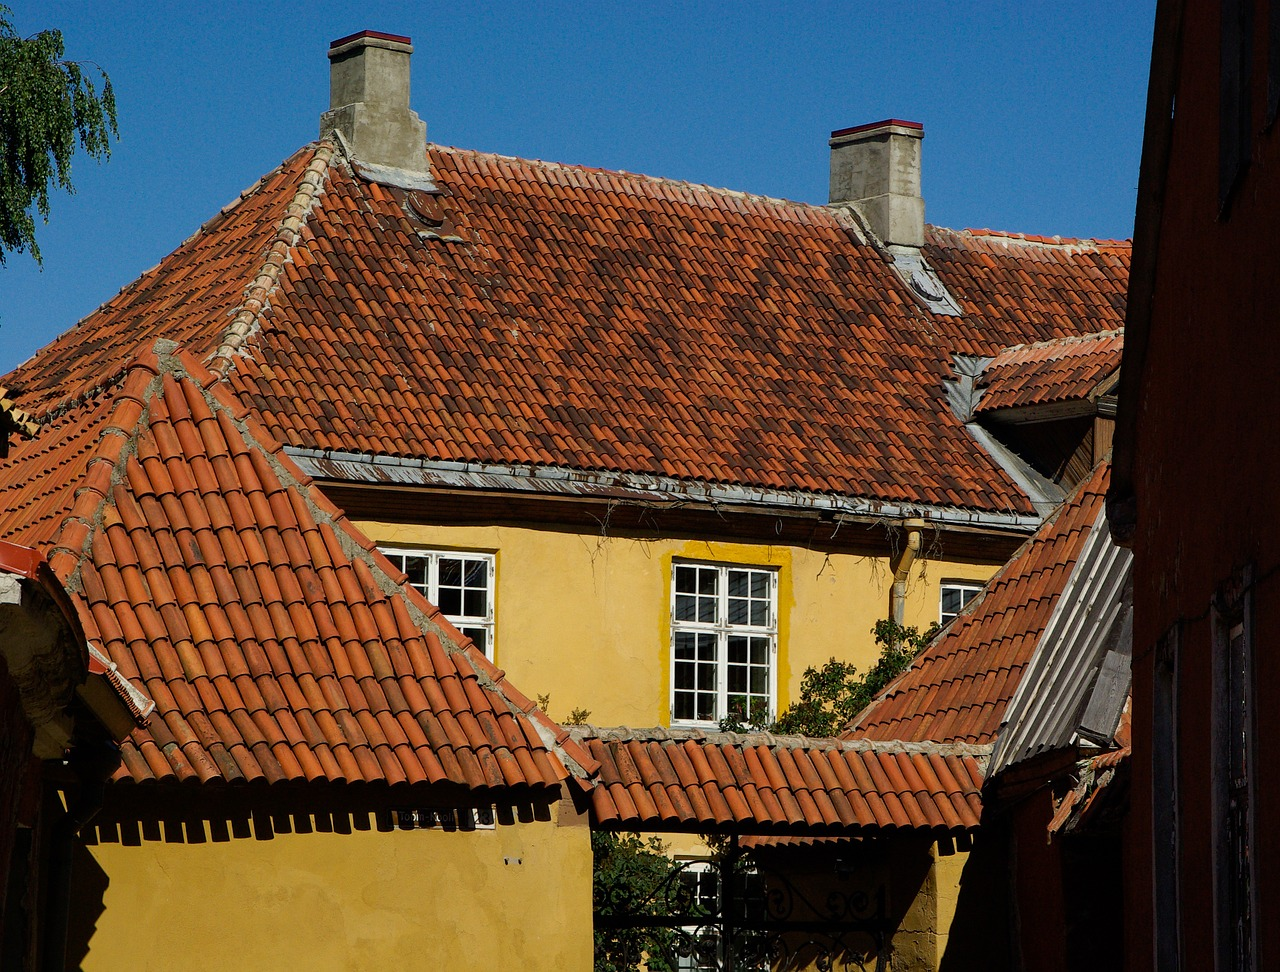 tallinn roofing tiles free photo